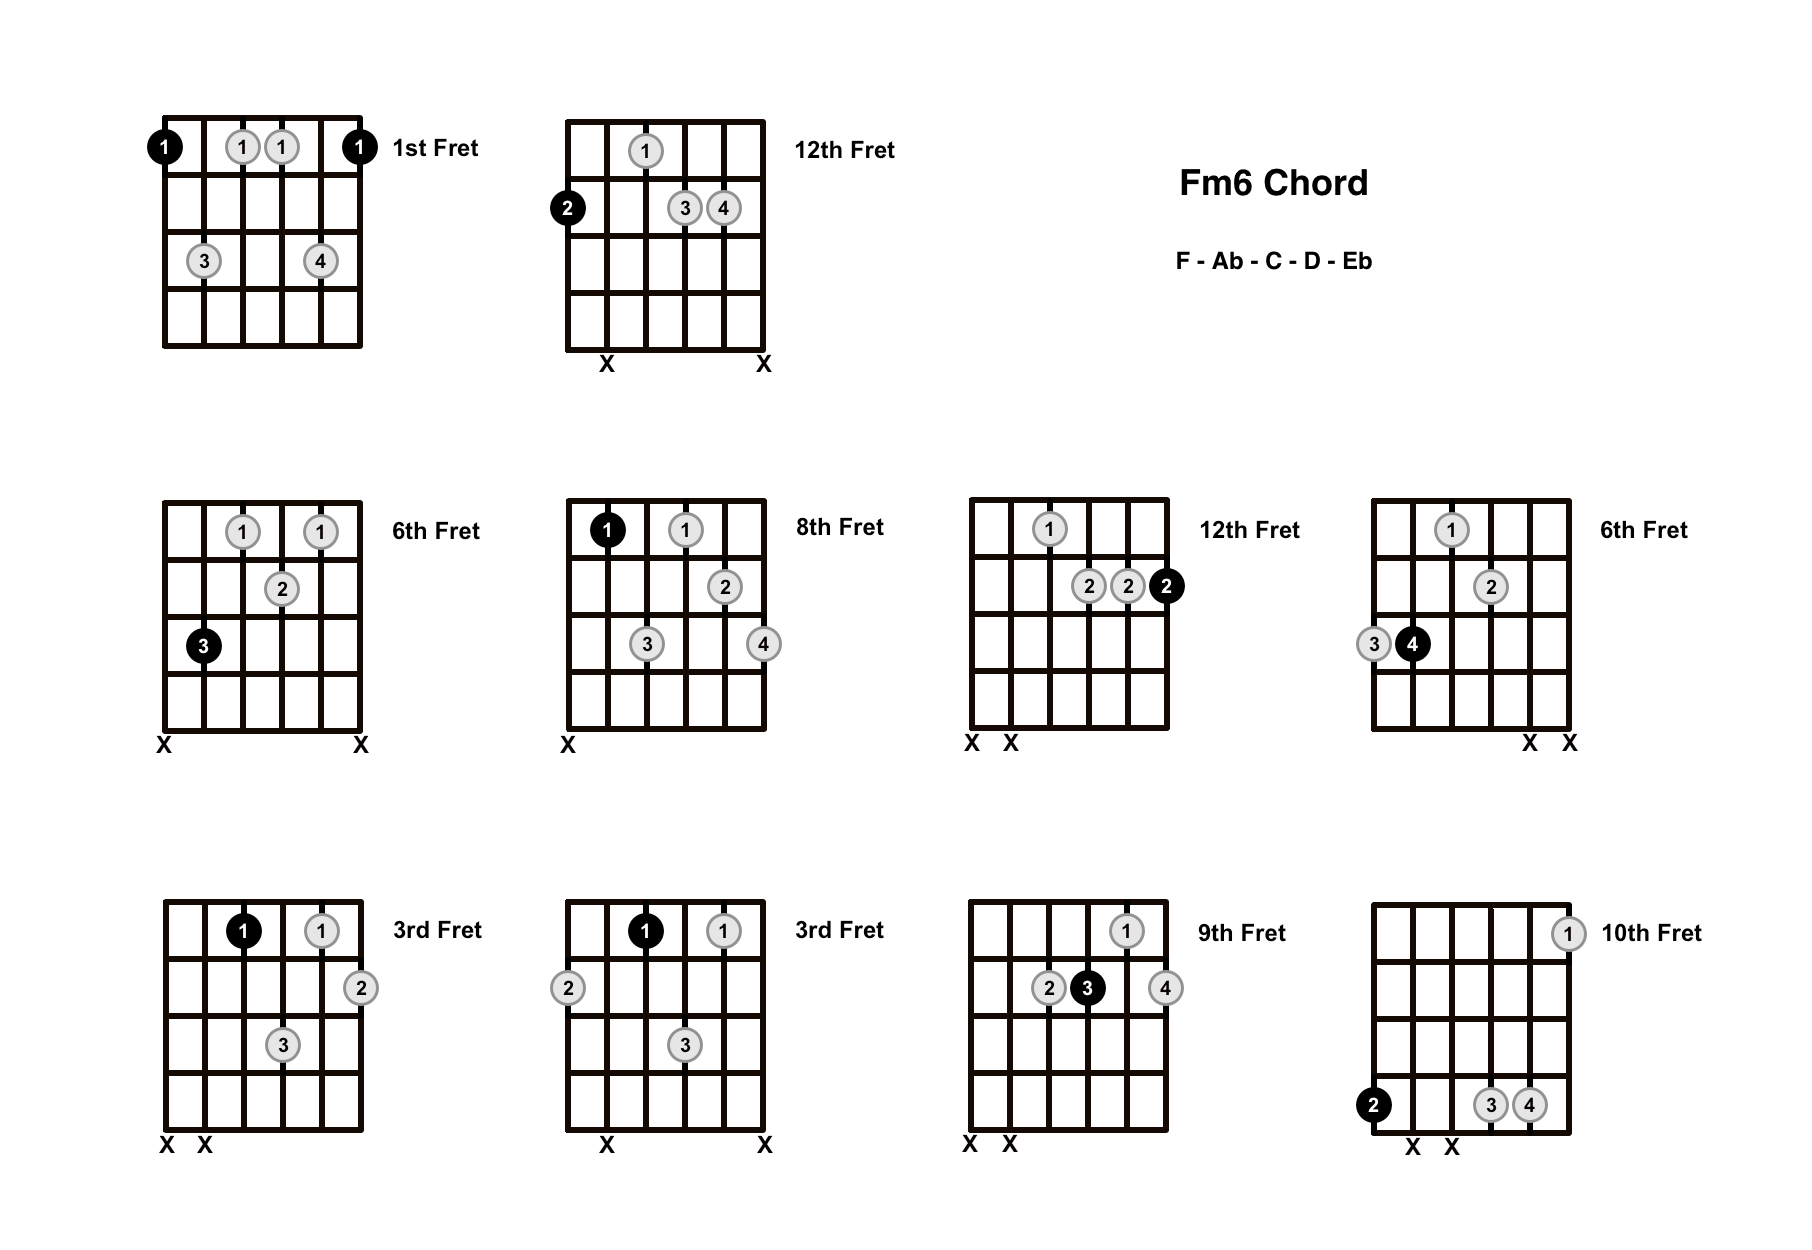 Fm6 Chord On The Guitar (F minor 6) – Diagrams, Finger Positions and Theory